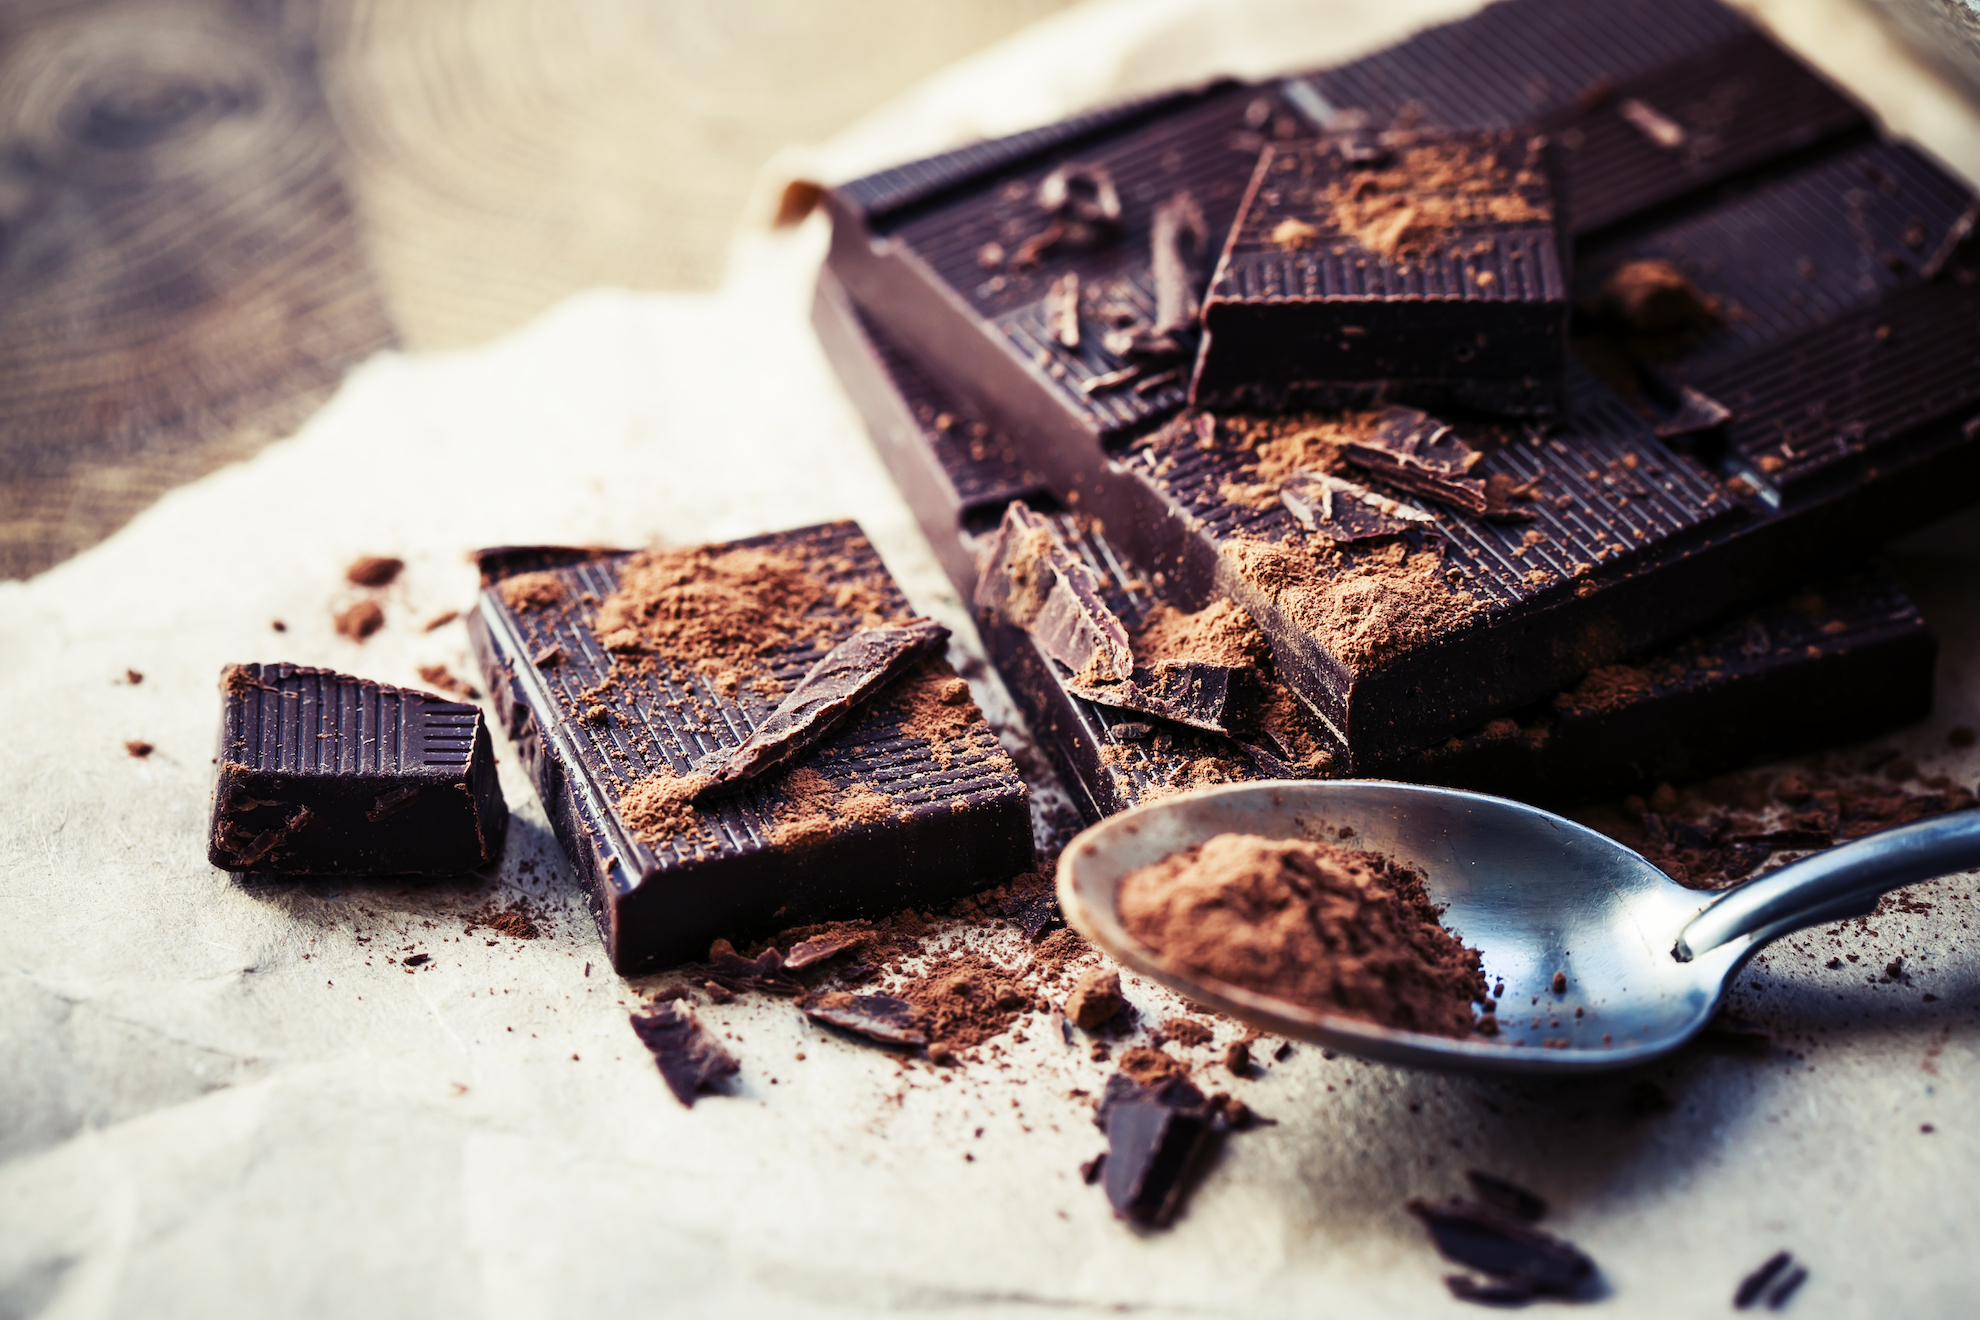 The findings of two separate studies have demonstrated that eating dark chocolate with a high concentration of cacao can reduce stress and inflammation while boosting mood, memory, immunity, and brain power.